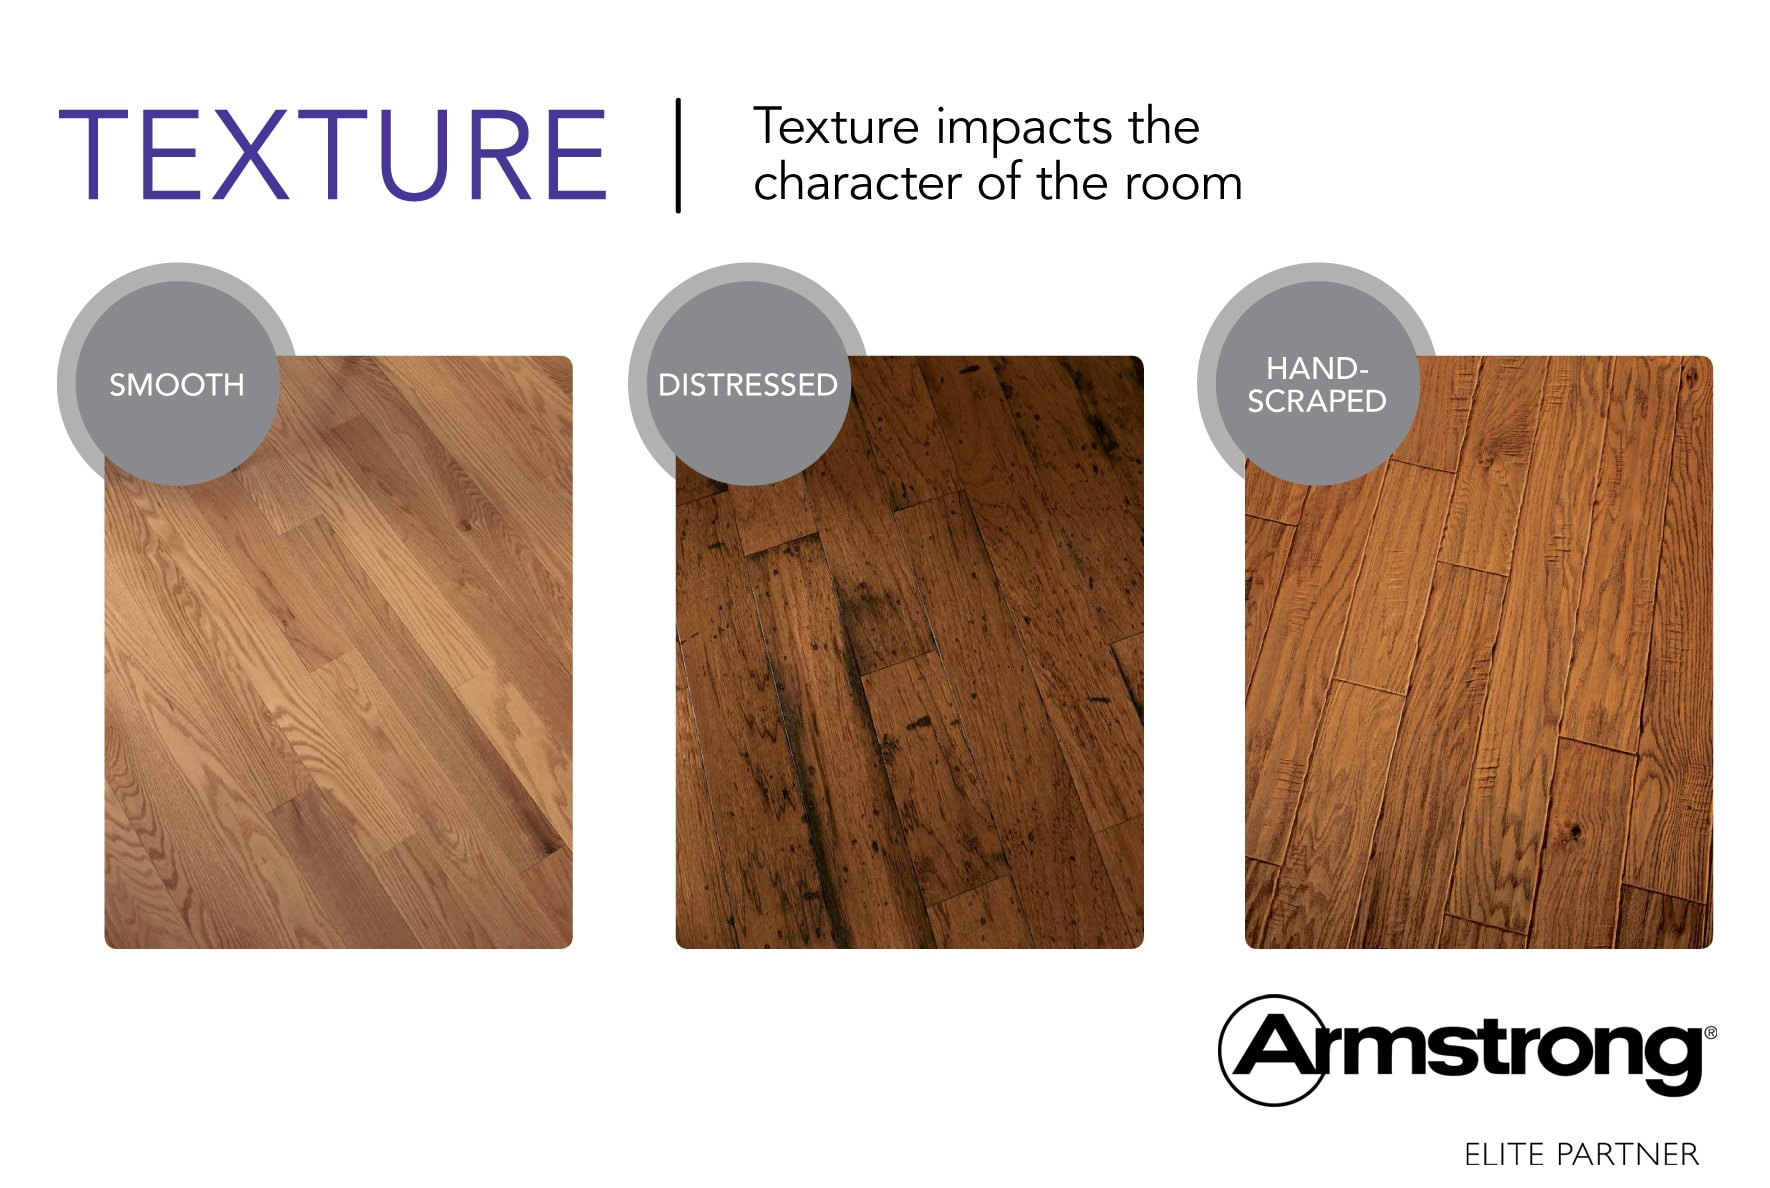 Hardwood Textures impacts the character of the room